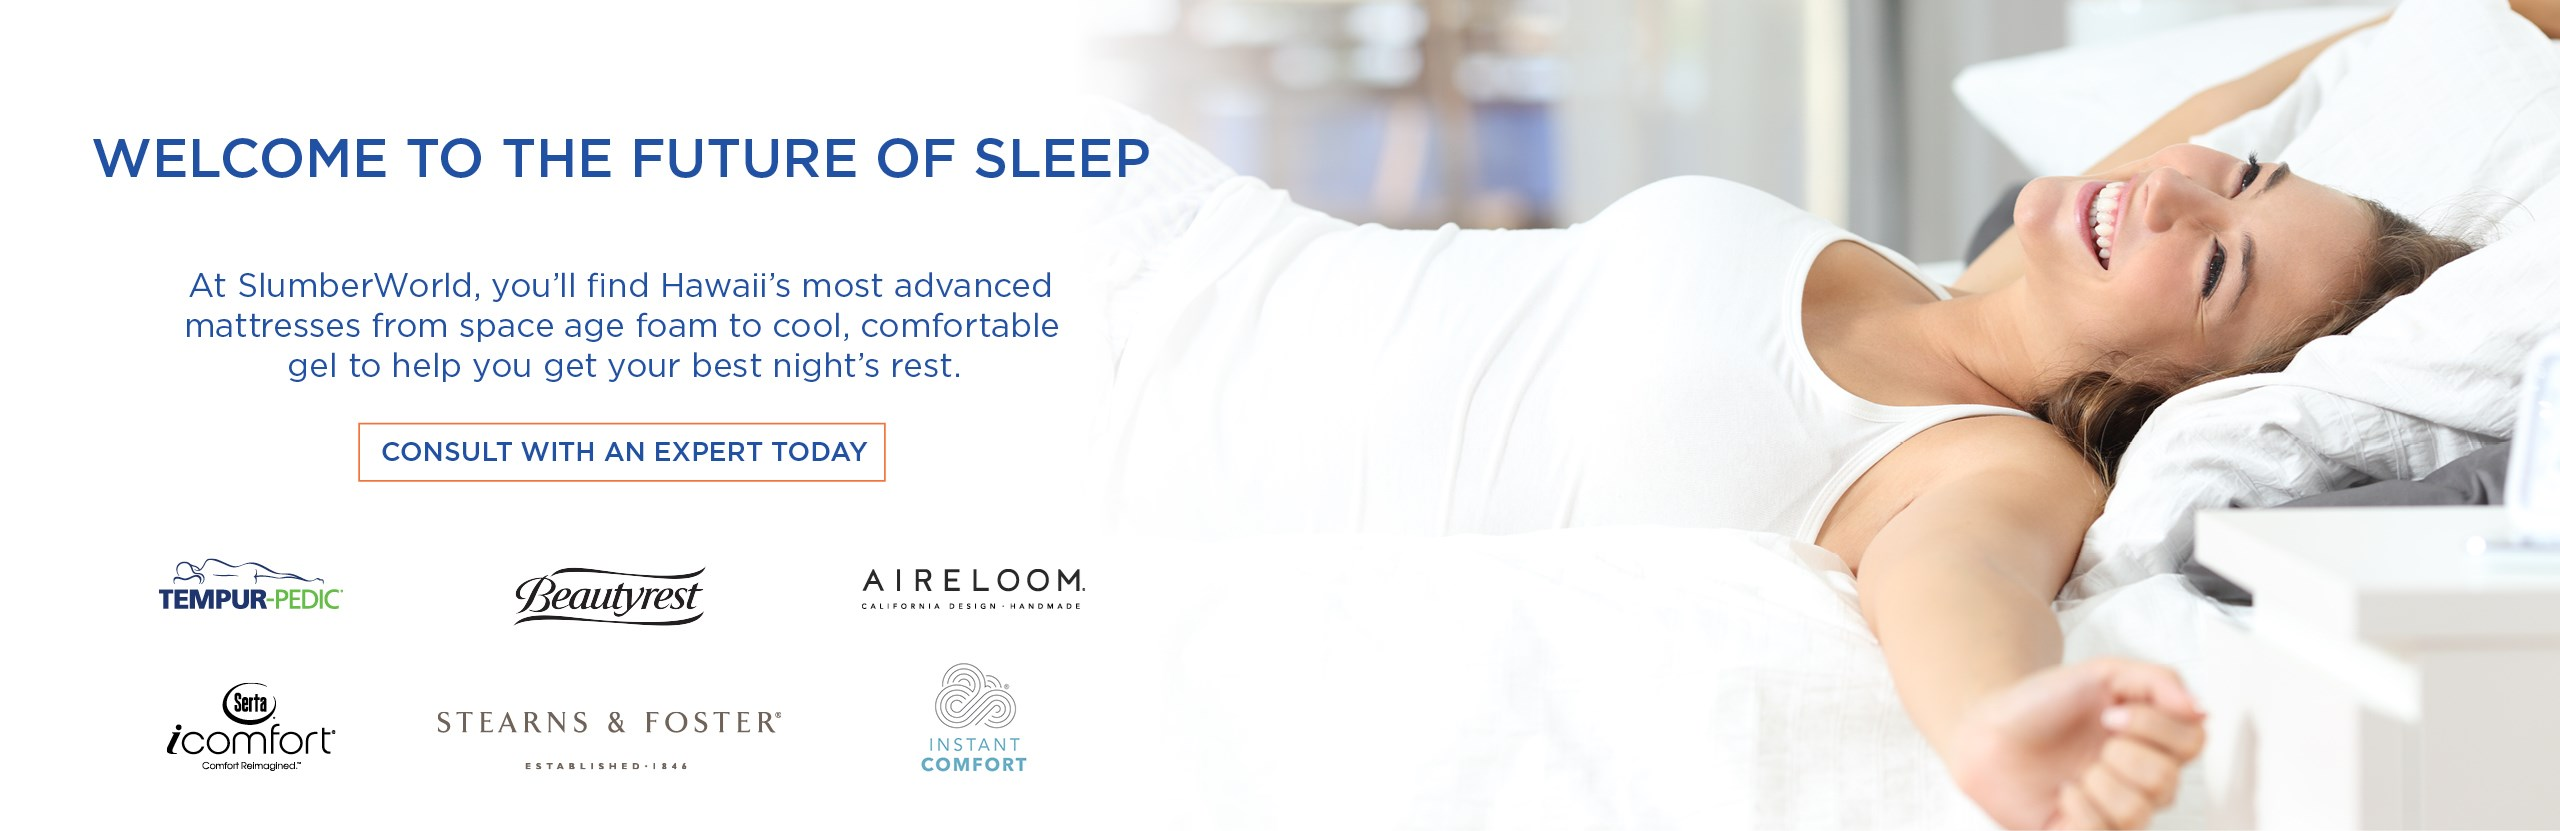 Welcome to the future of sleep